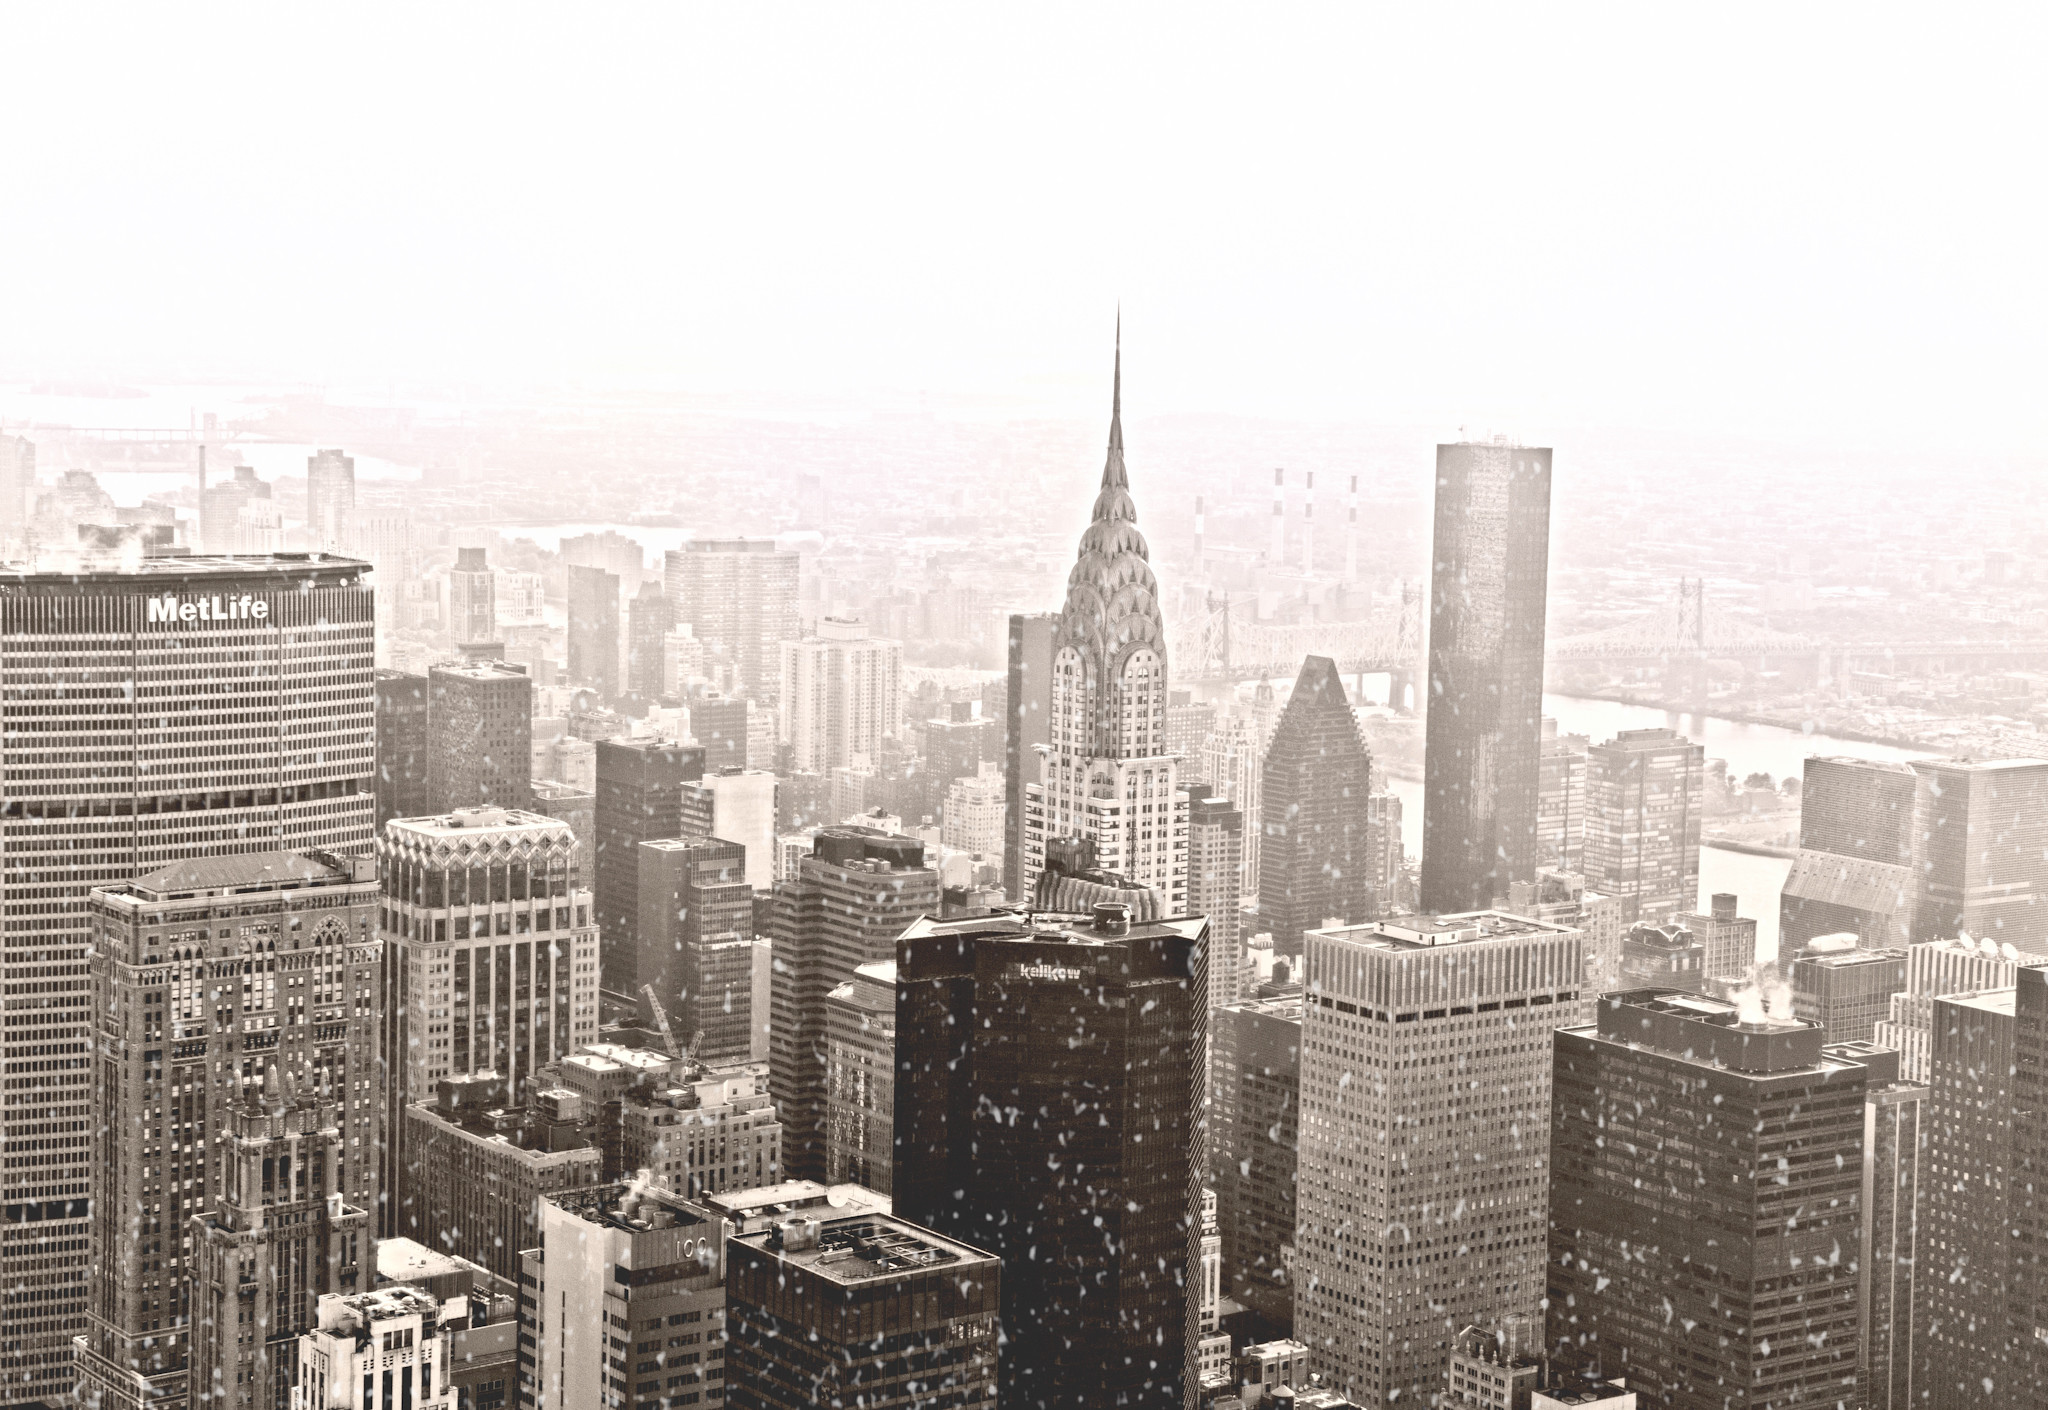 New York City Winter Skyline Wallpaper